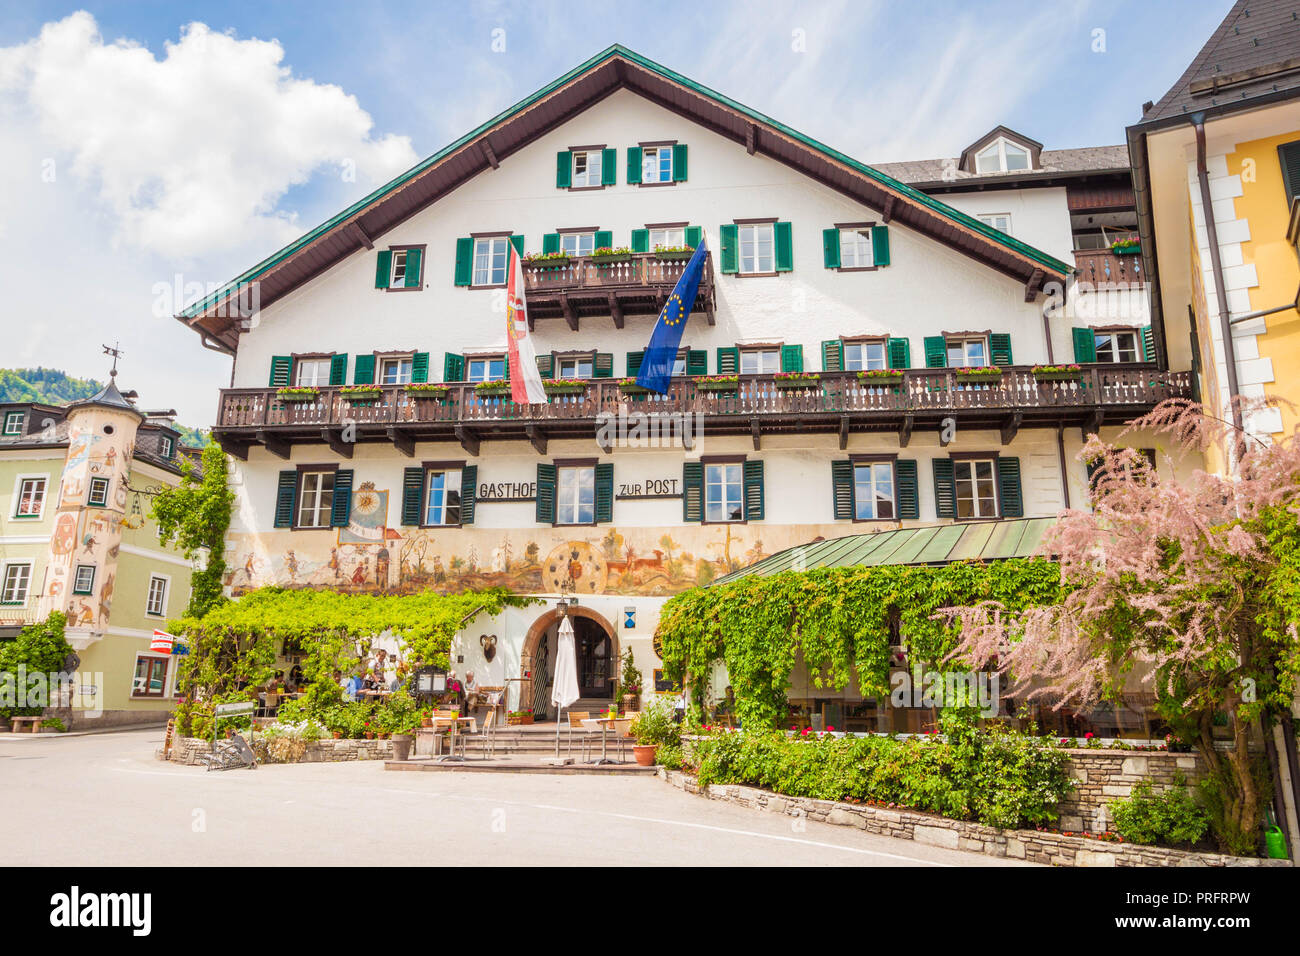 St. Gilgen, Austria - May 23, 2017: Hotel Gasthof Zur Post in a typical austrian house on the main square of austrian town St. Gilgen. - Stock Image